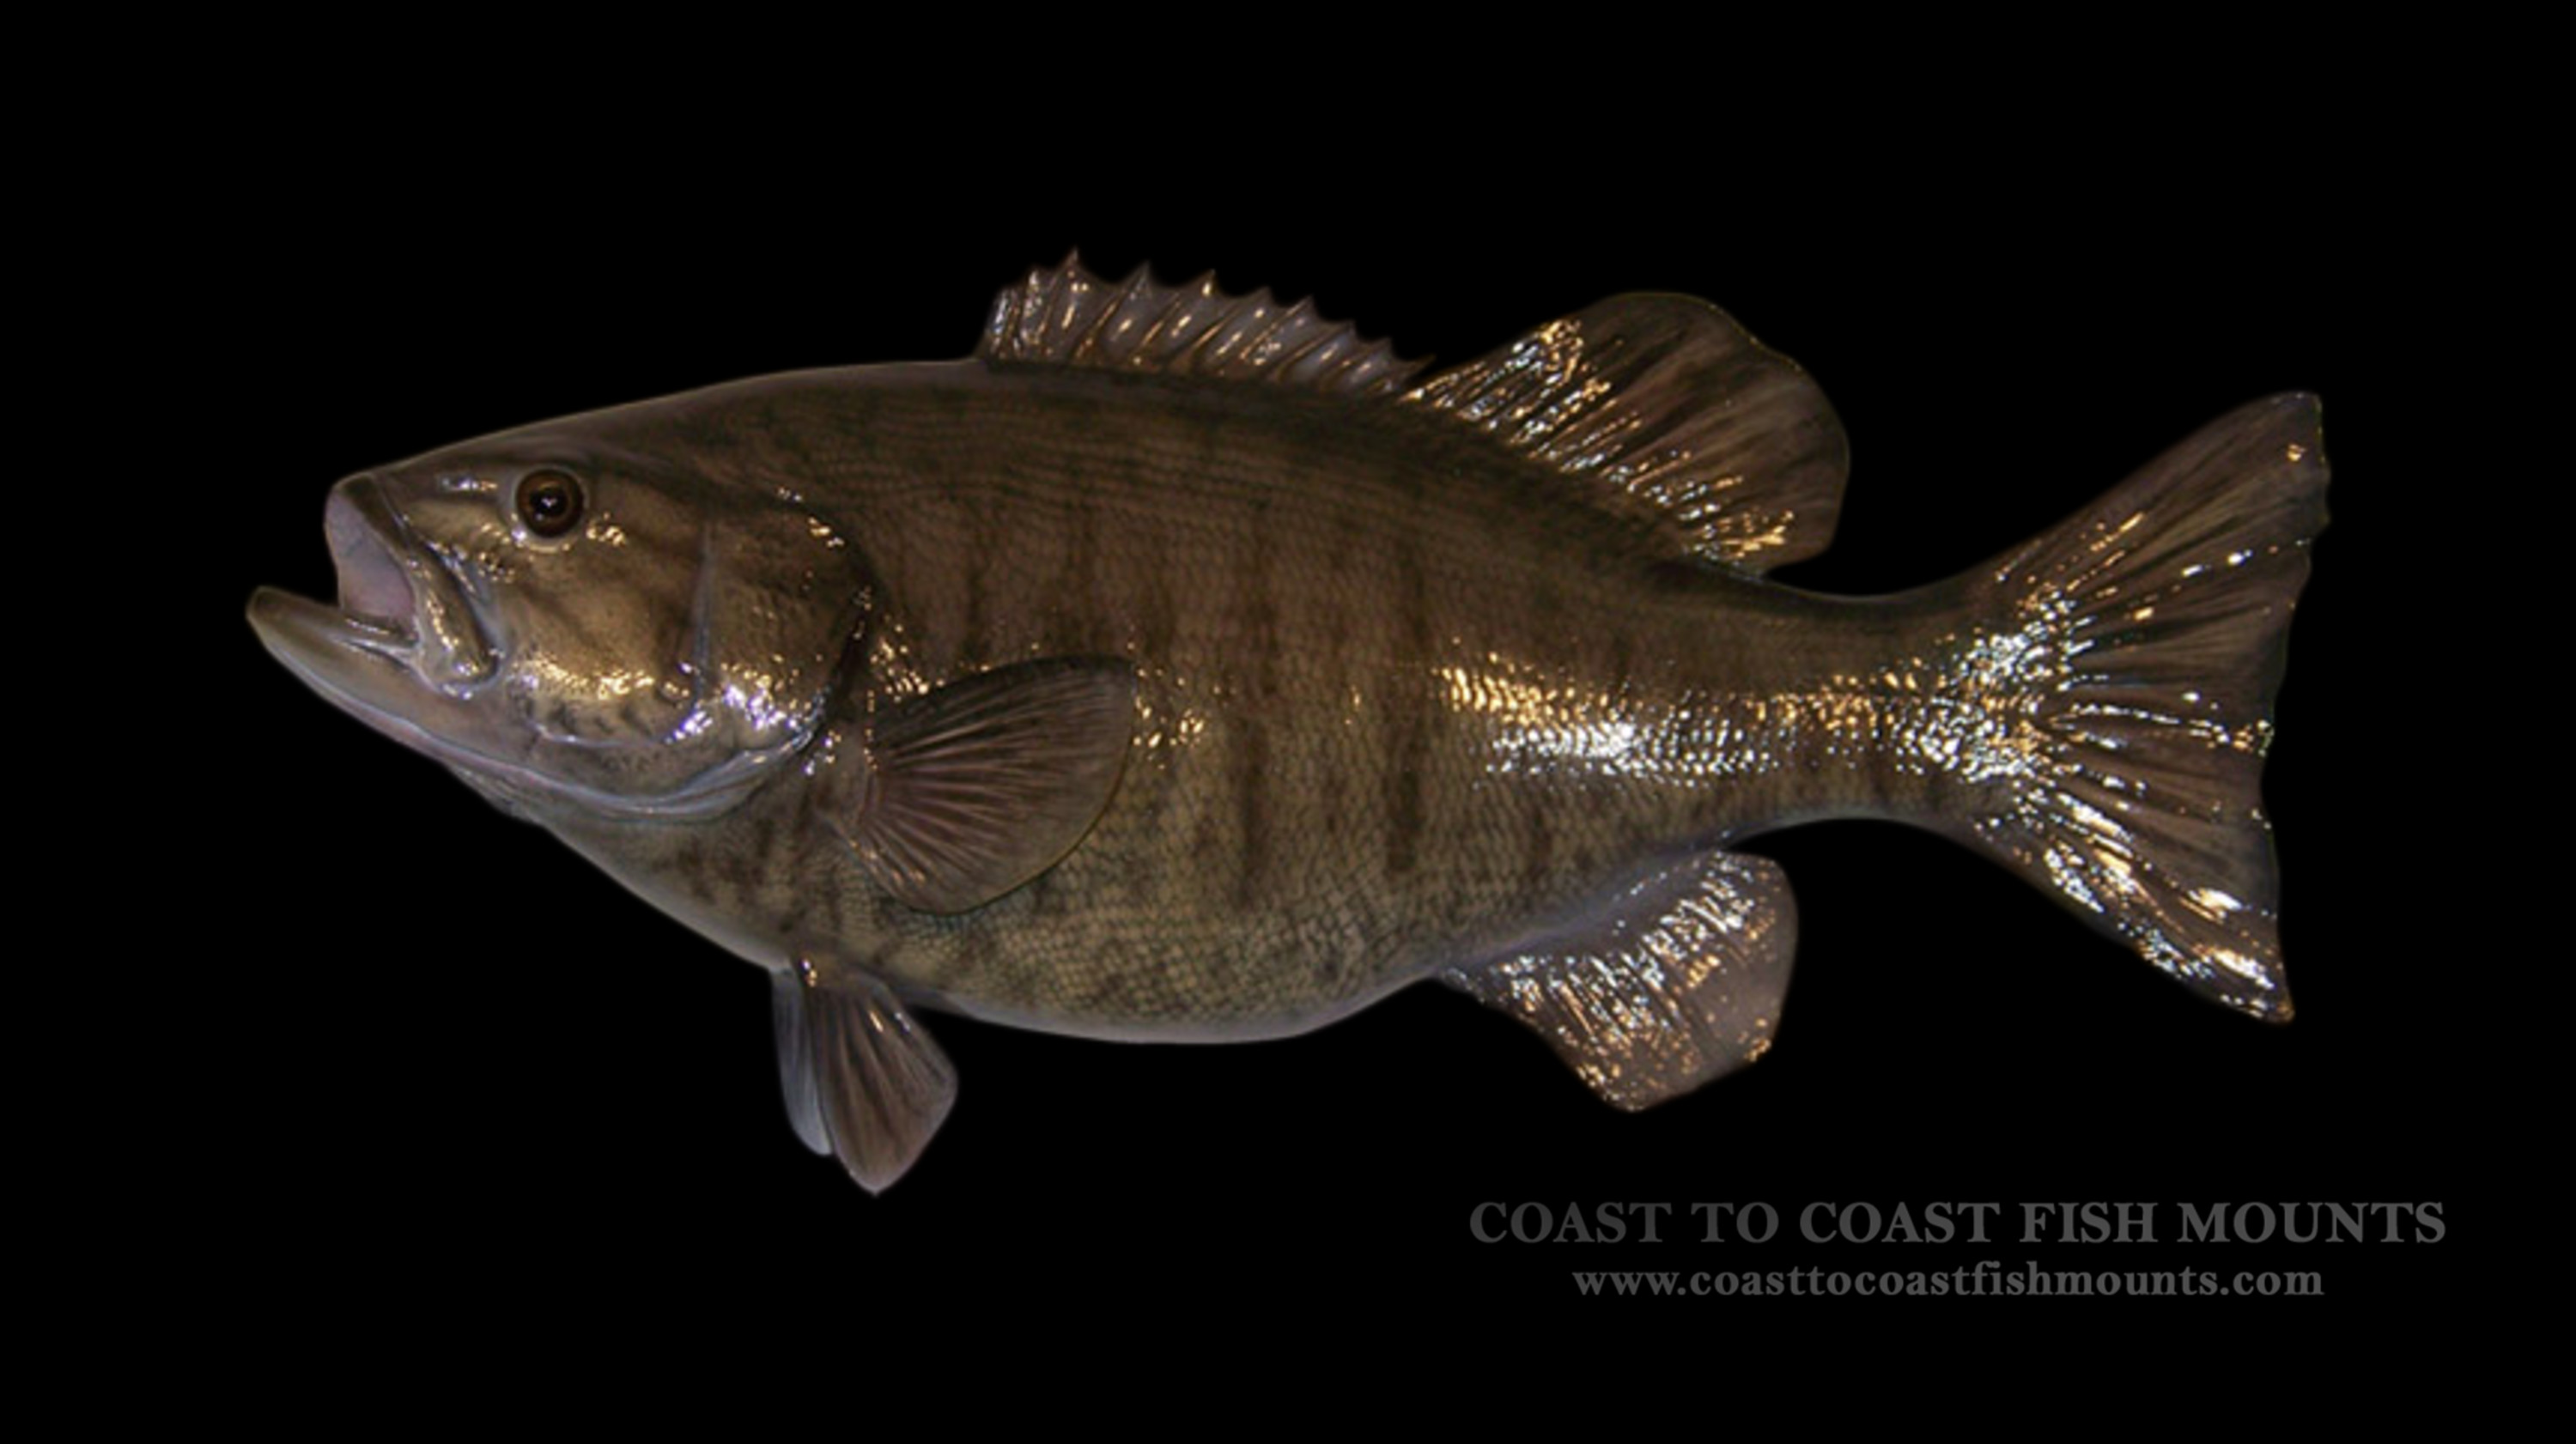 Smallmouth bass fish mount and fish replicas coast to coast for Mount this fish company